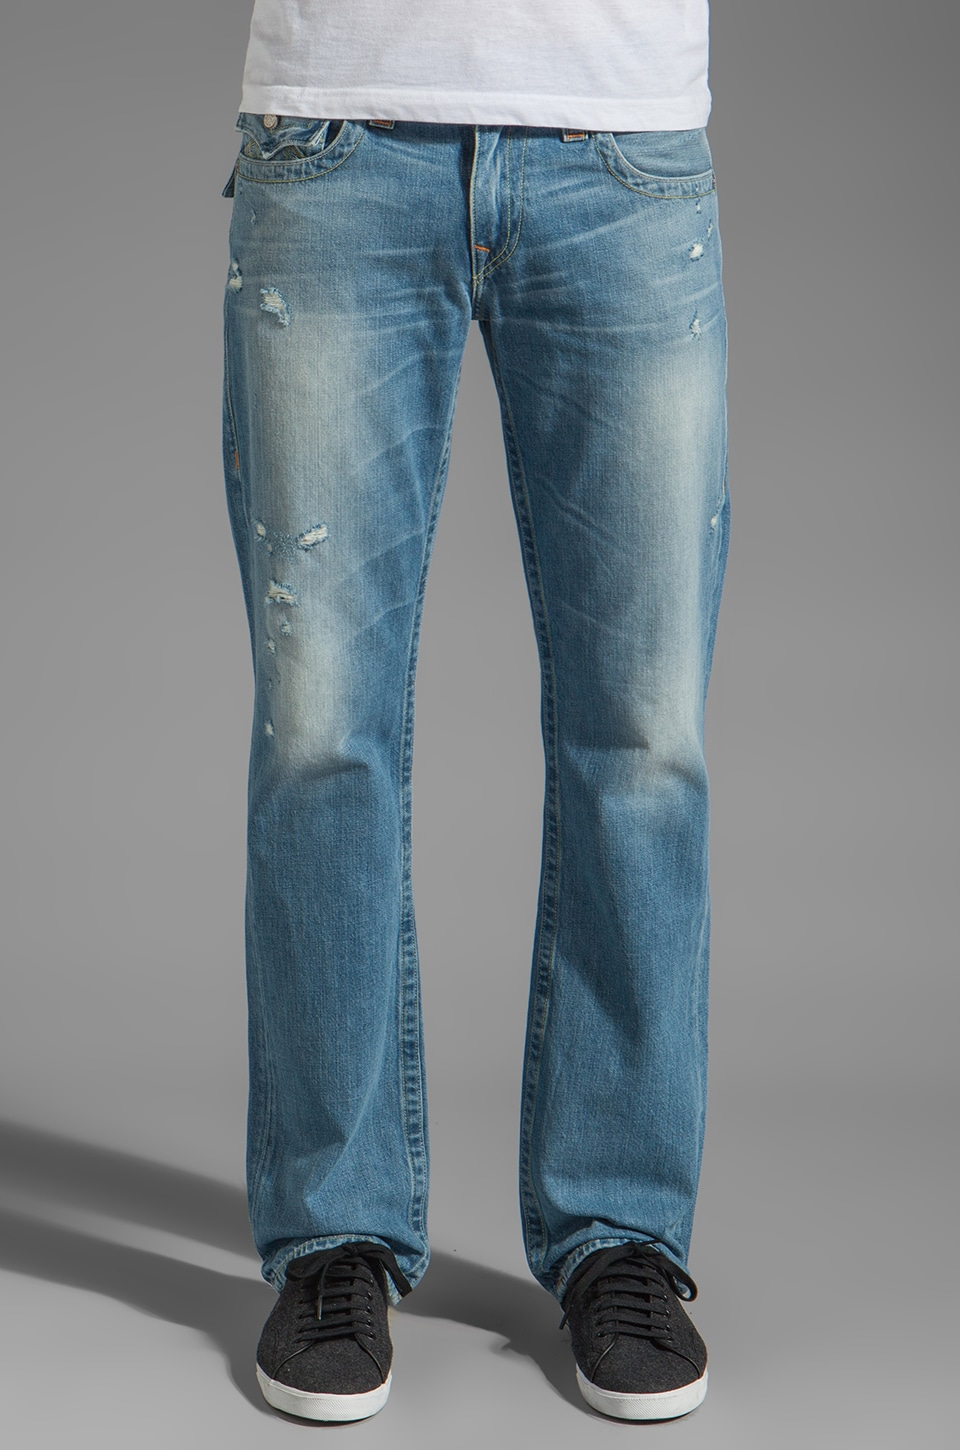 True Religion Ricky Multi Stitch Straight Leg in Jameson